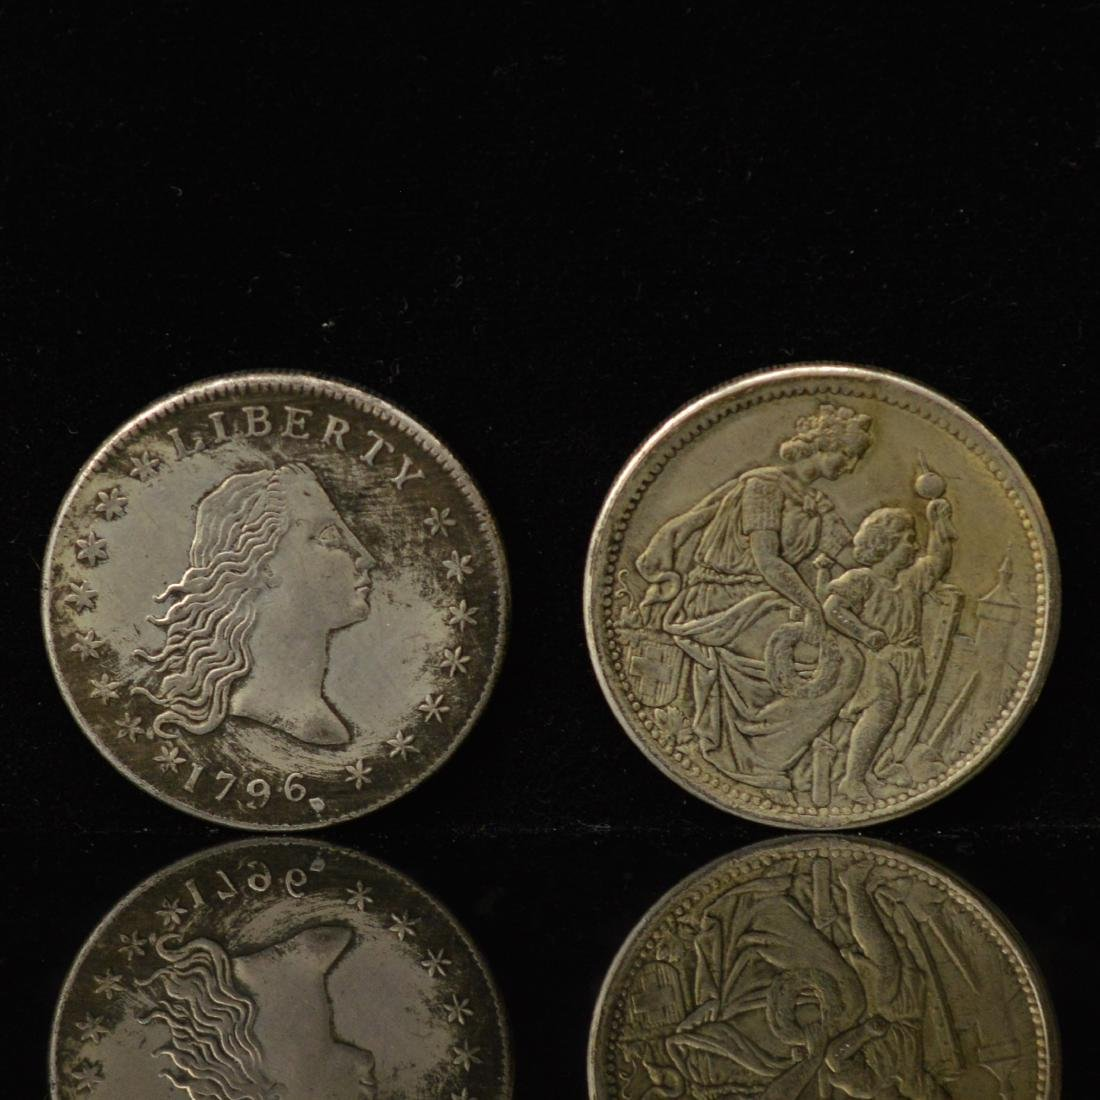 A1796 US libery Silver coins and A 1865 5 Francs coin